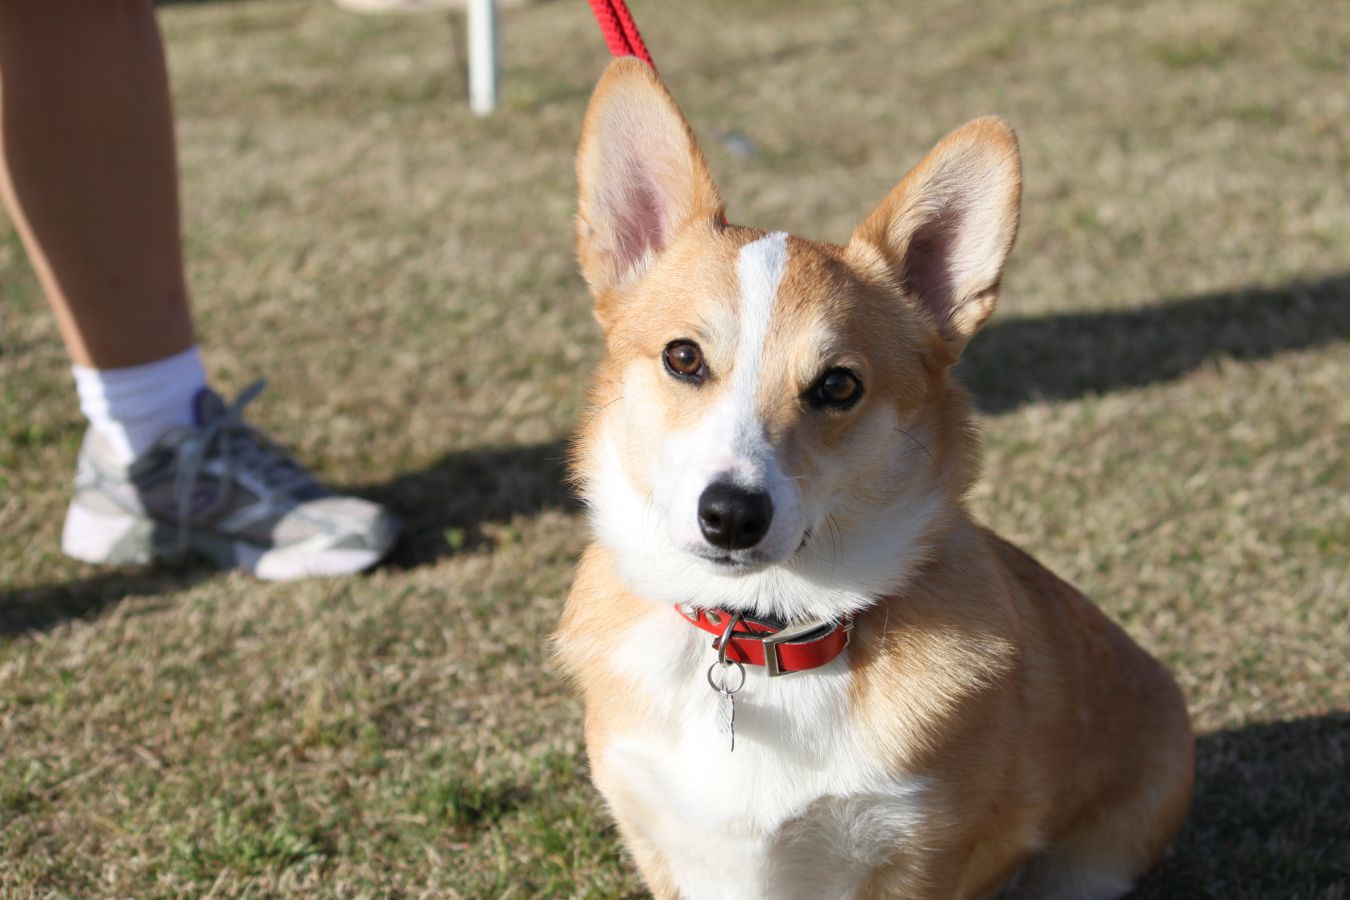 Corgi Puppies For Sale in USA amp Canada Free Shipping Call us at 1 5403616125